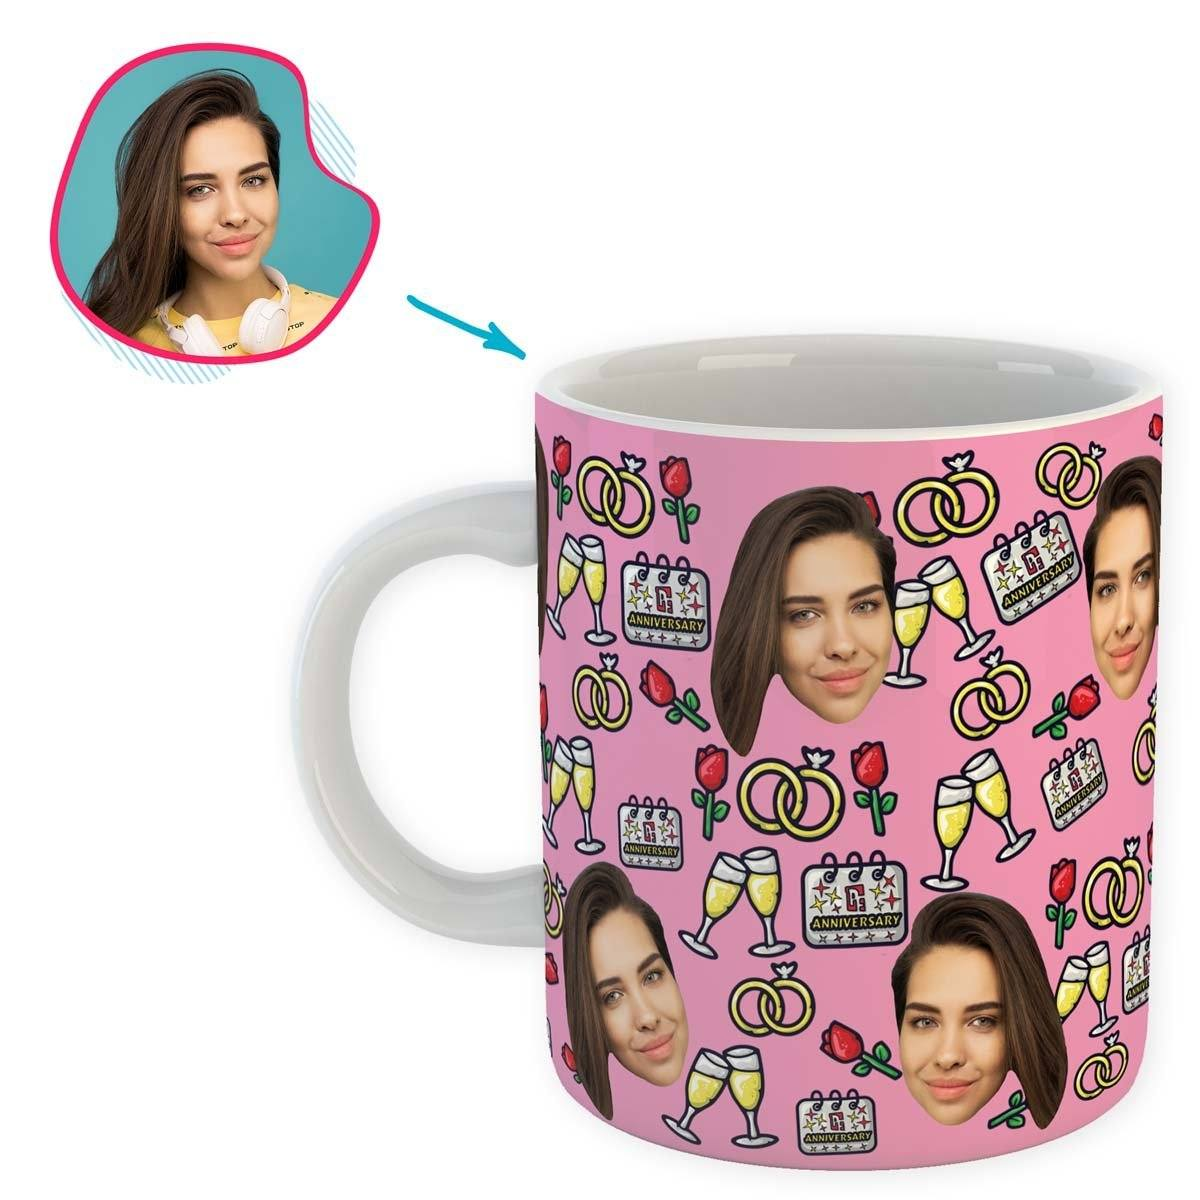 Pink Anniversary personalized mug with photo of face printed on it